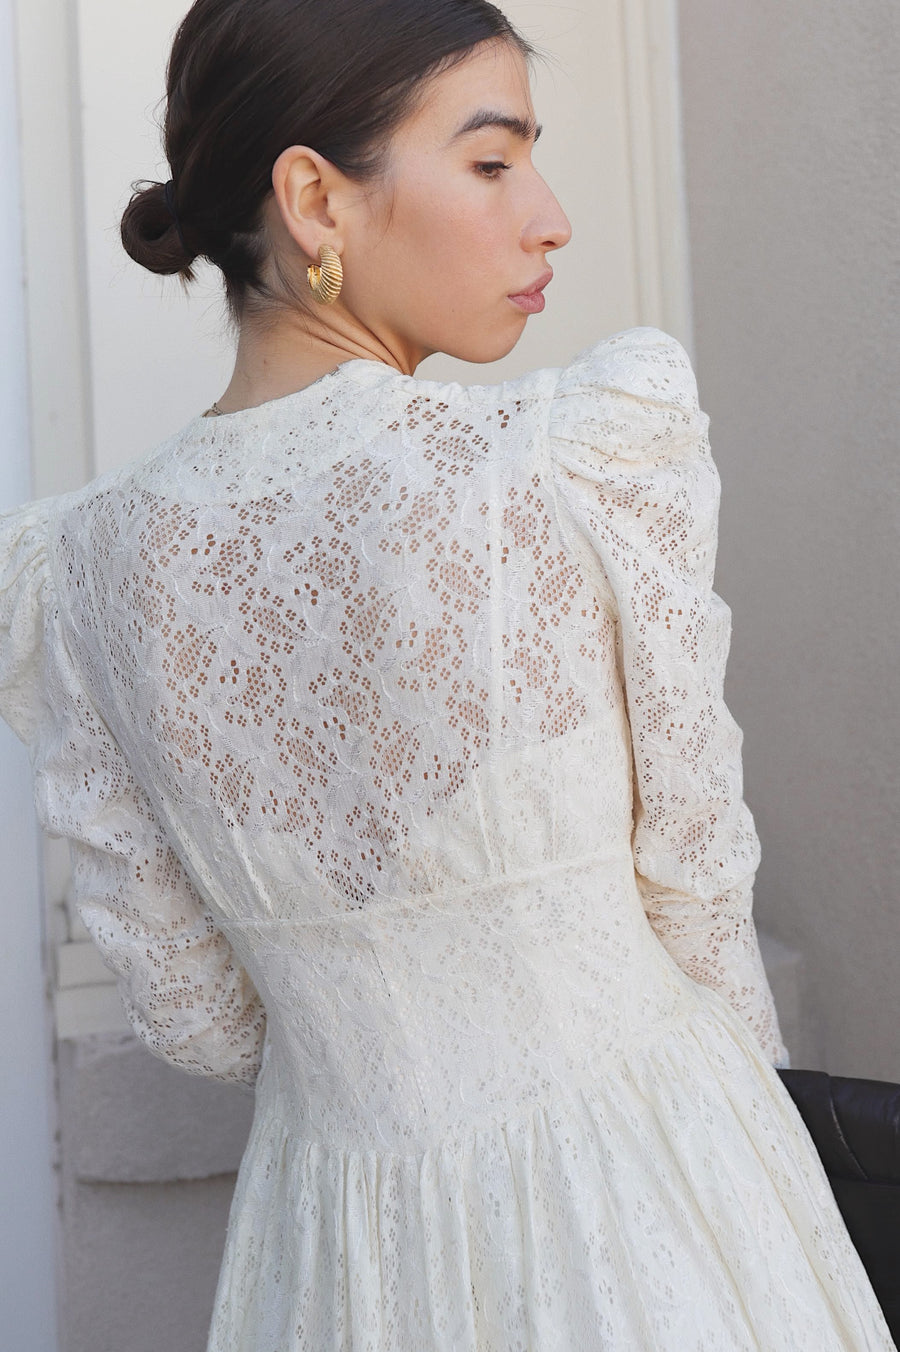 Vintage 1930s White Lace Puff Sleeve Gown